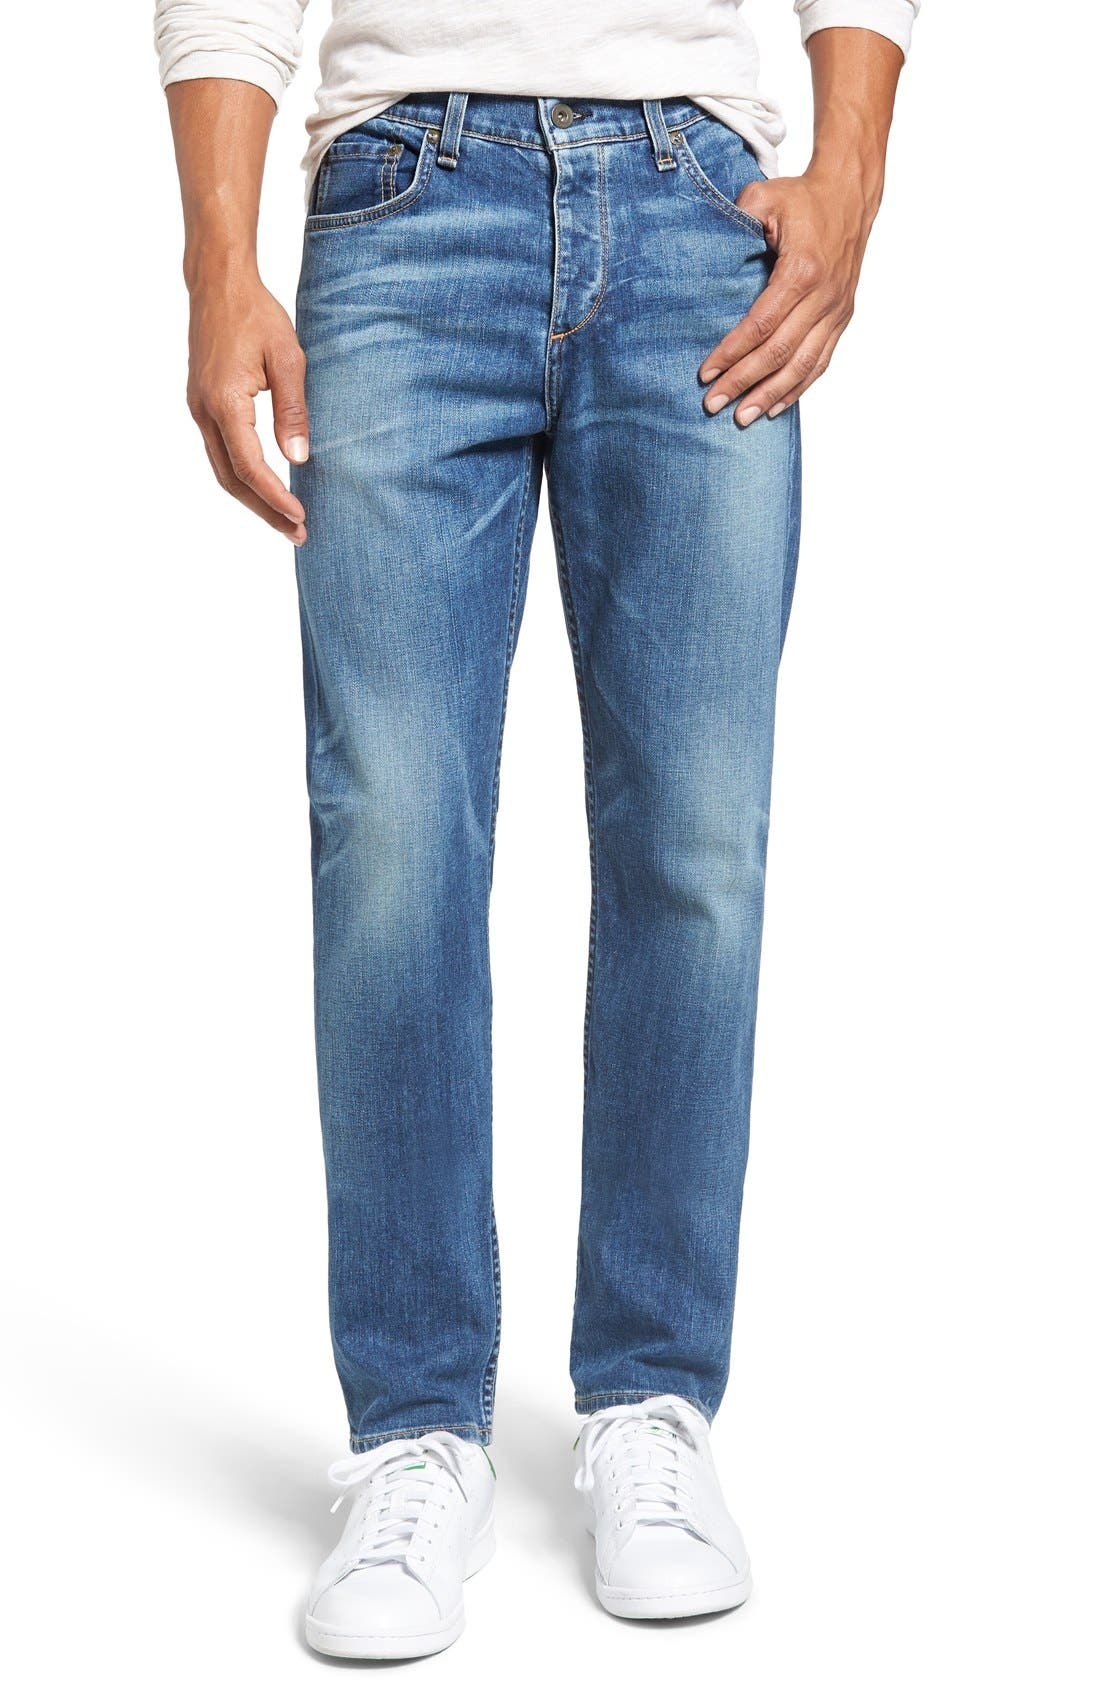 Alternate Image 1 Selected - rag & bone Standard Issue Fit 3 Slim Straight Leg Jeans (Bainbridge)